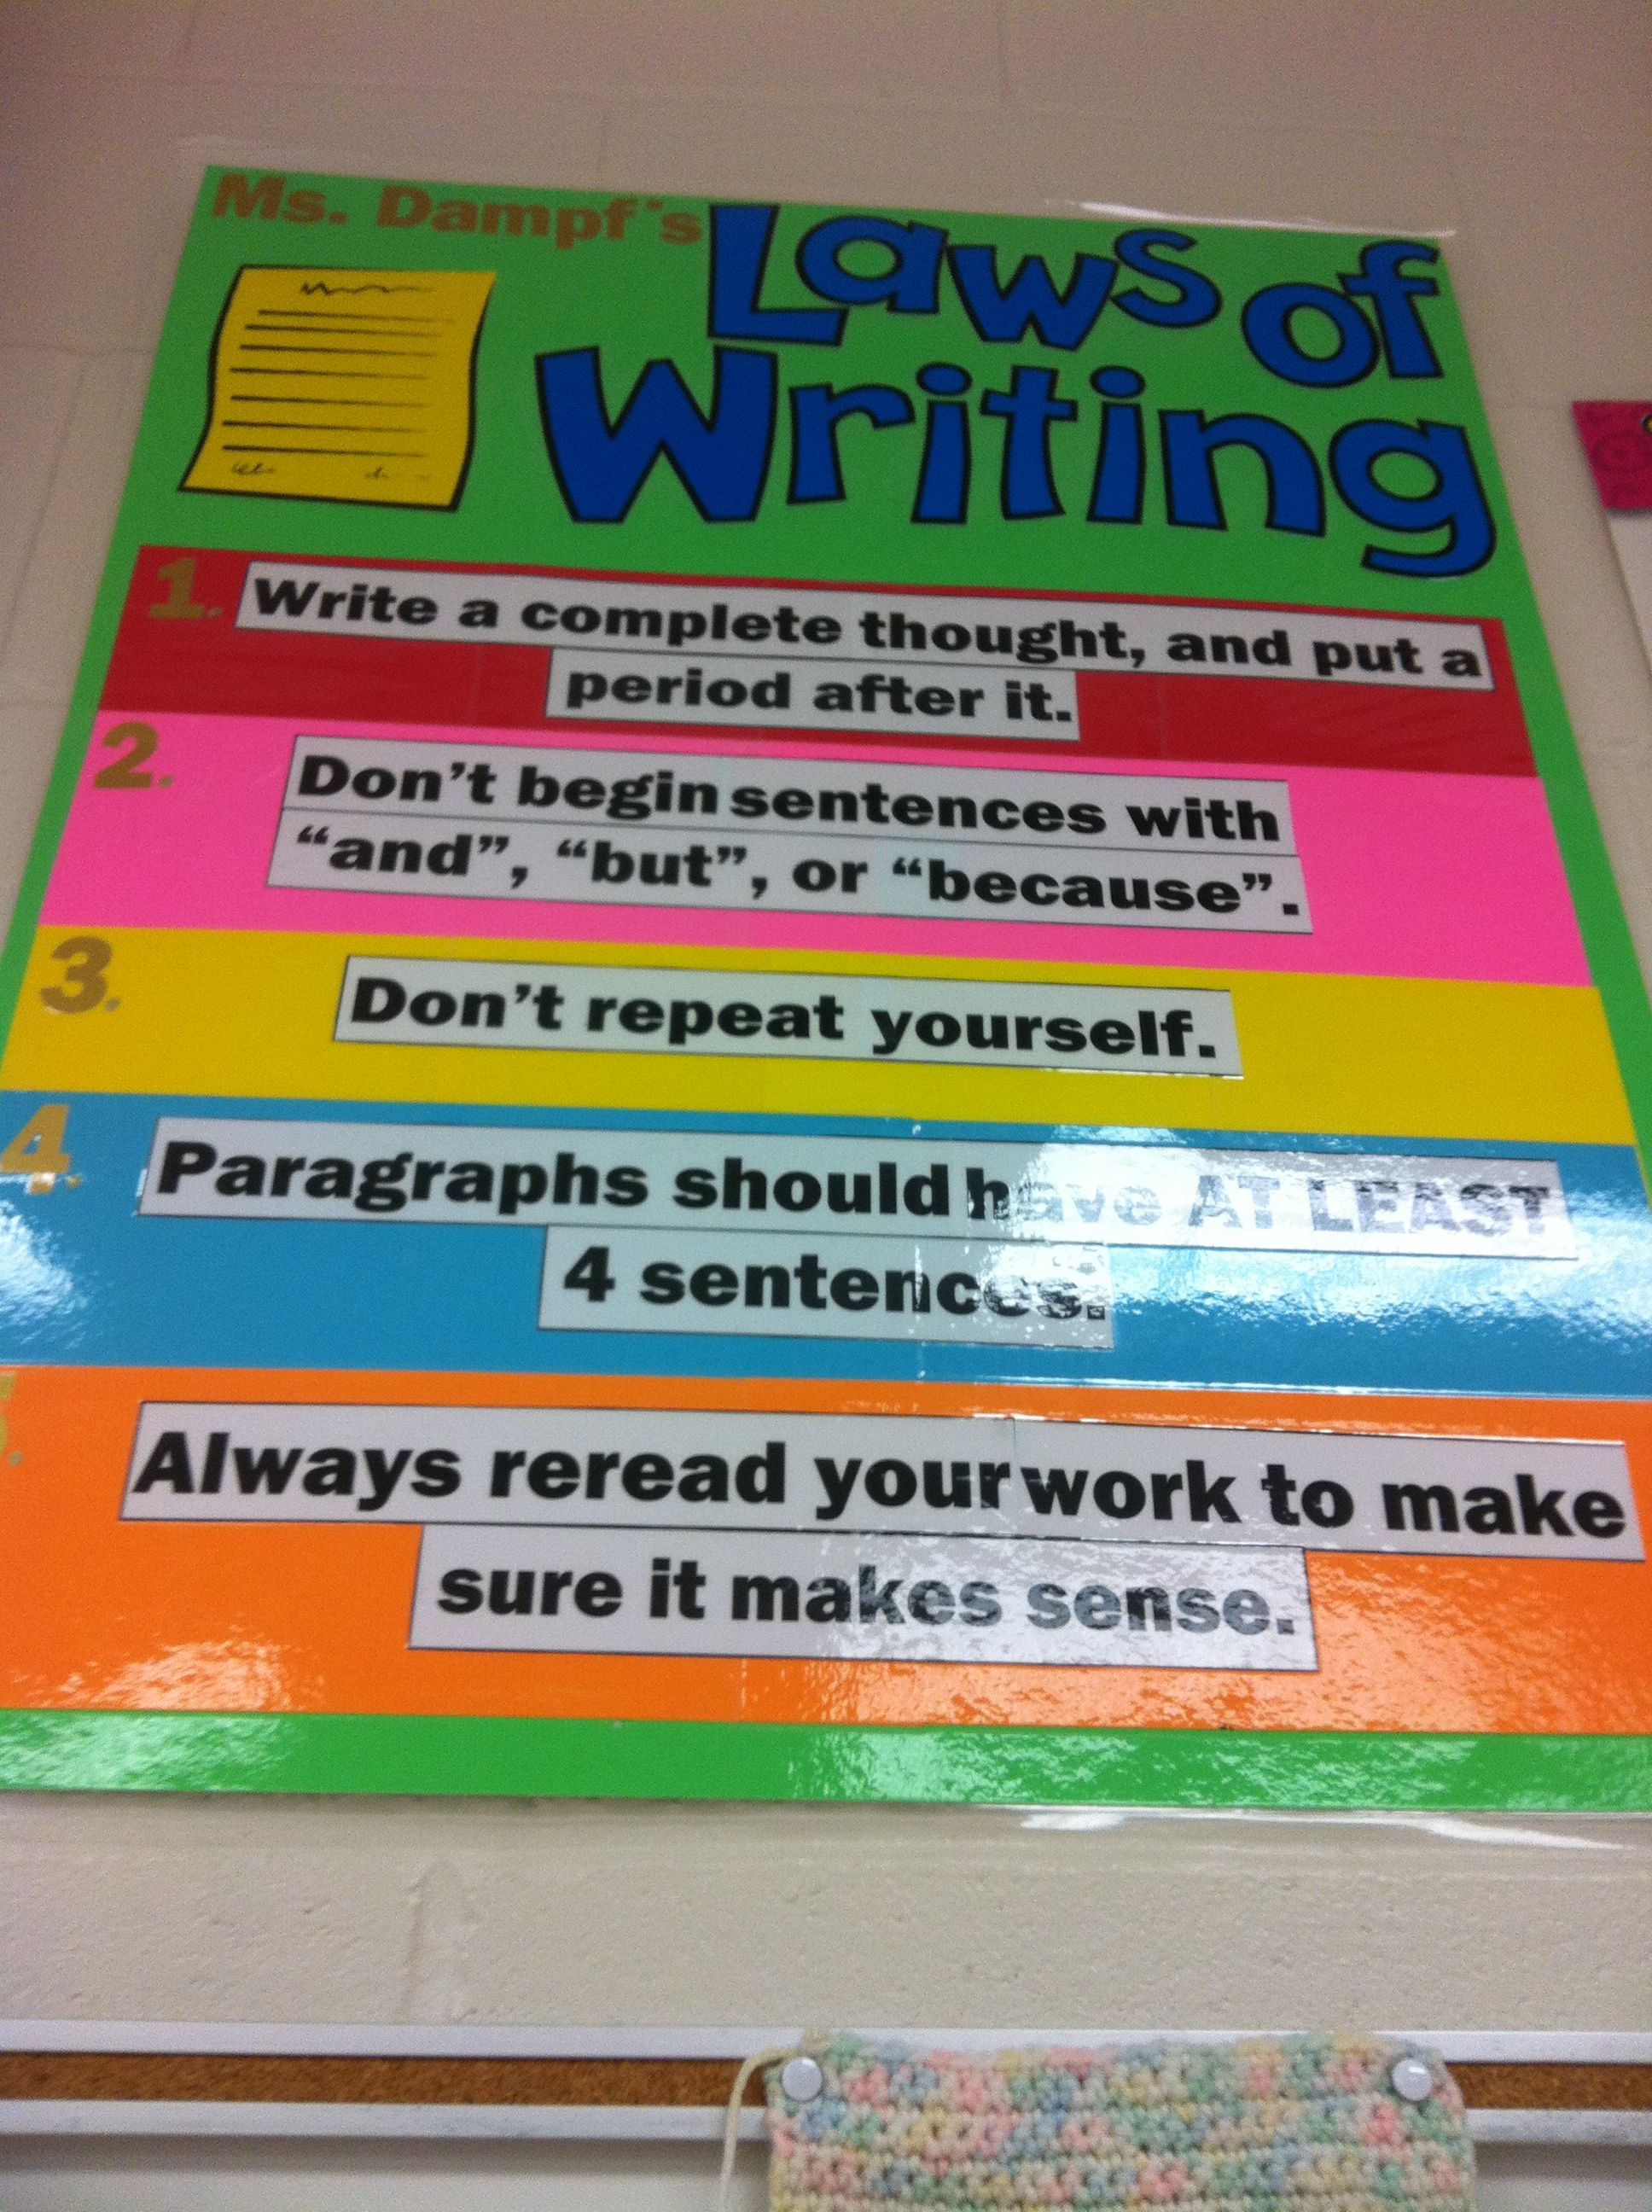 My Laws of Writing